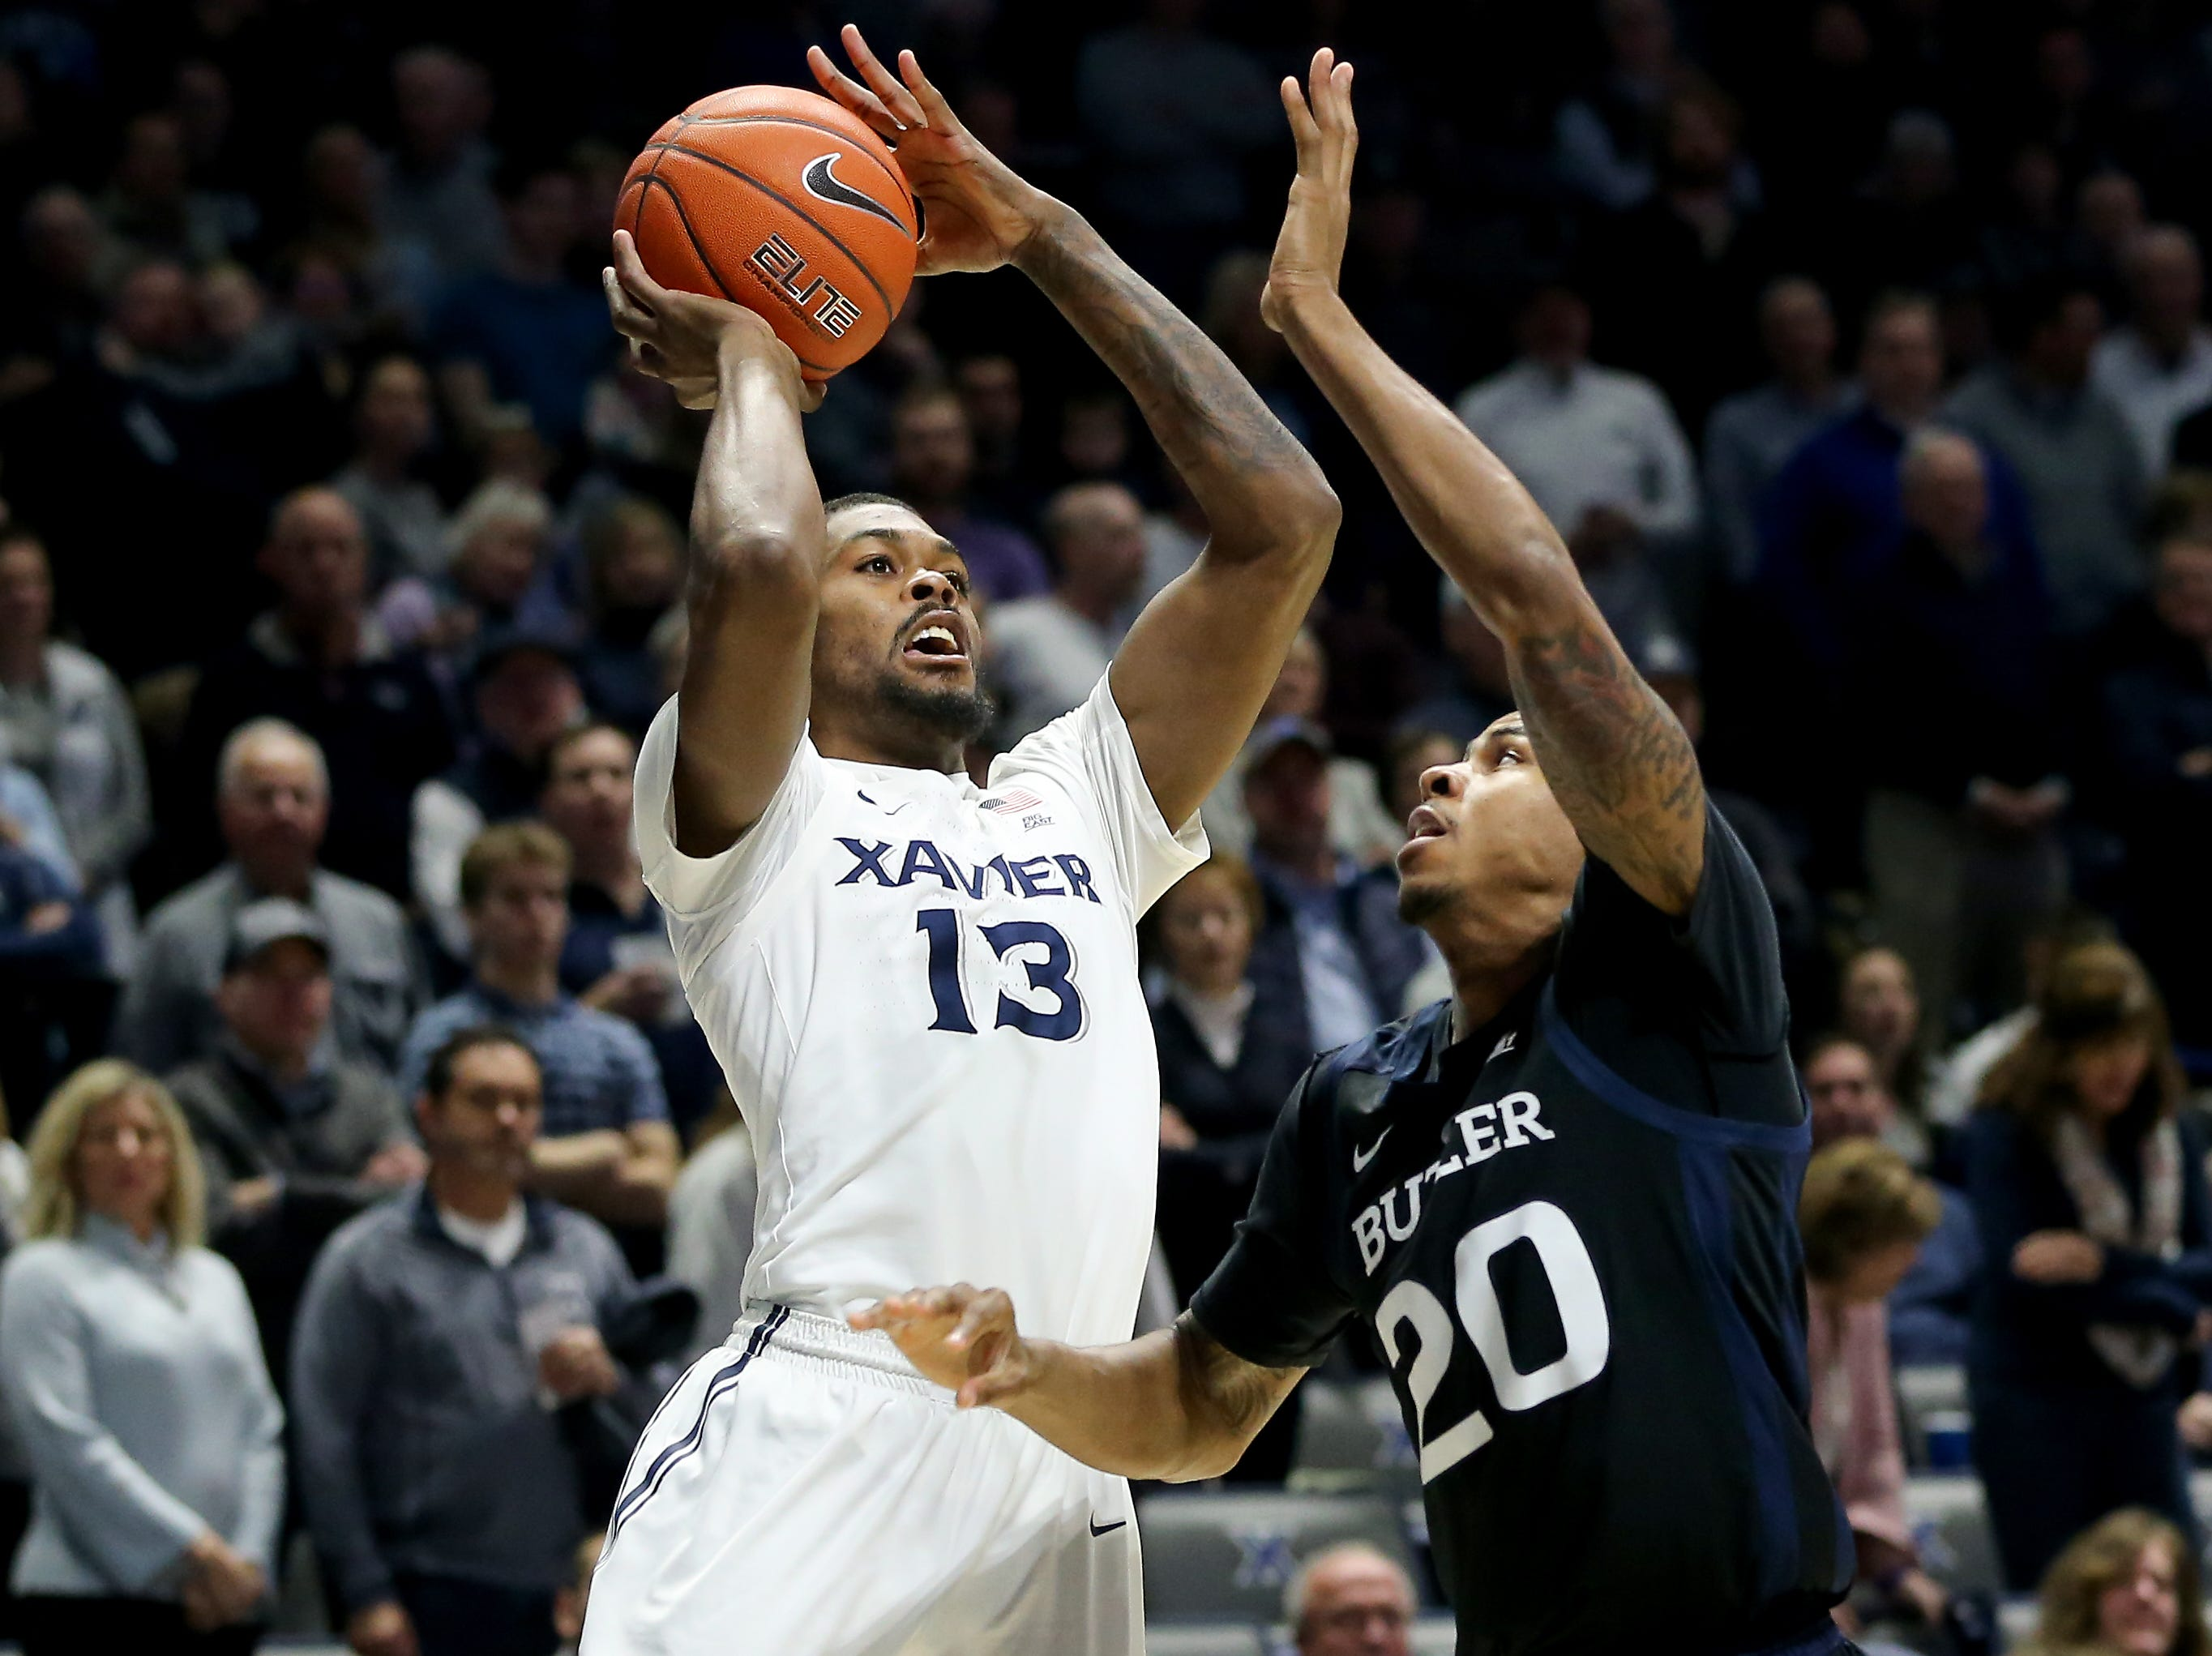 Xavier Musketeers forward Naji Marshall (13) rises for a shot as Butler Bulldogs forward Henry Baddley (20) defends in the first half of an NCAA college basketball game, Sunday, Jan. 13, 2019, at Cintas Center in Cincinnati.